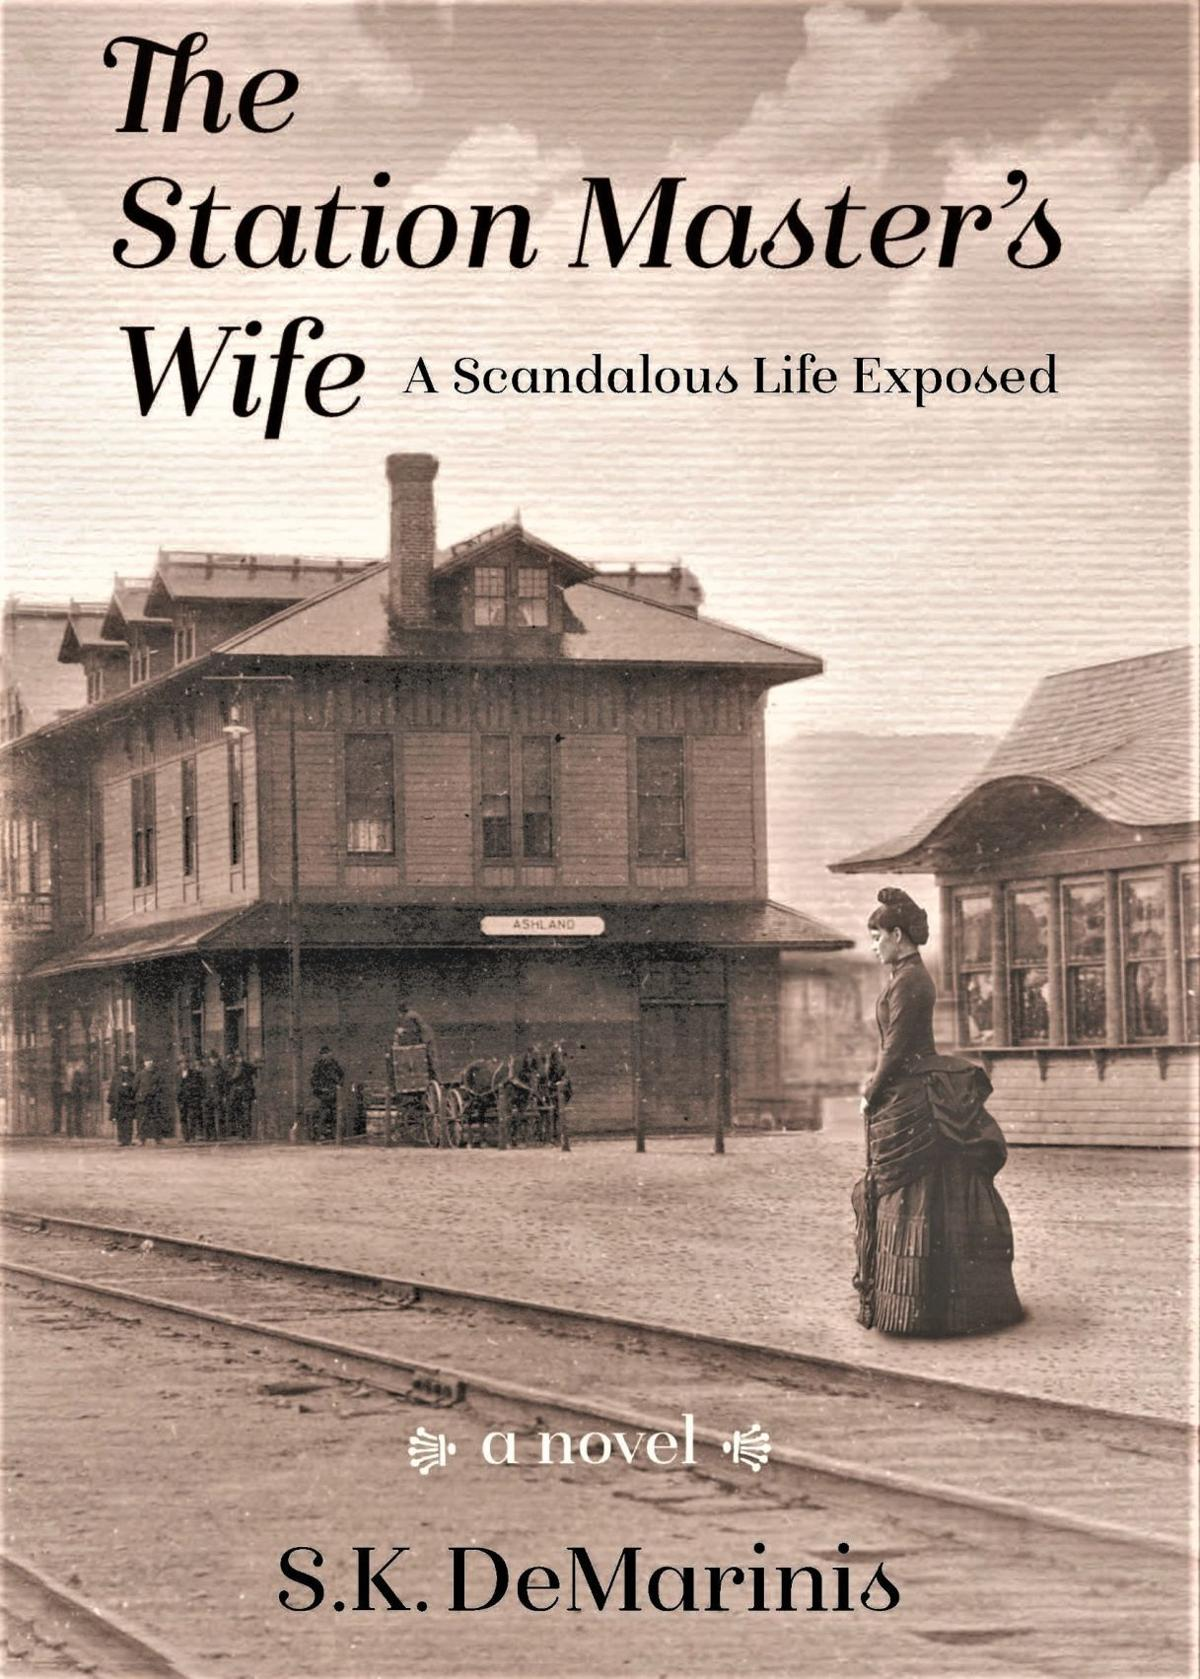 The Station Master's Wife by Sue DeMarinis